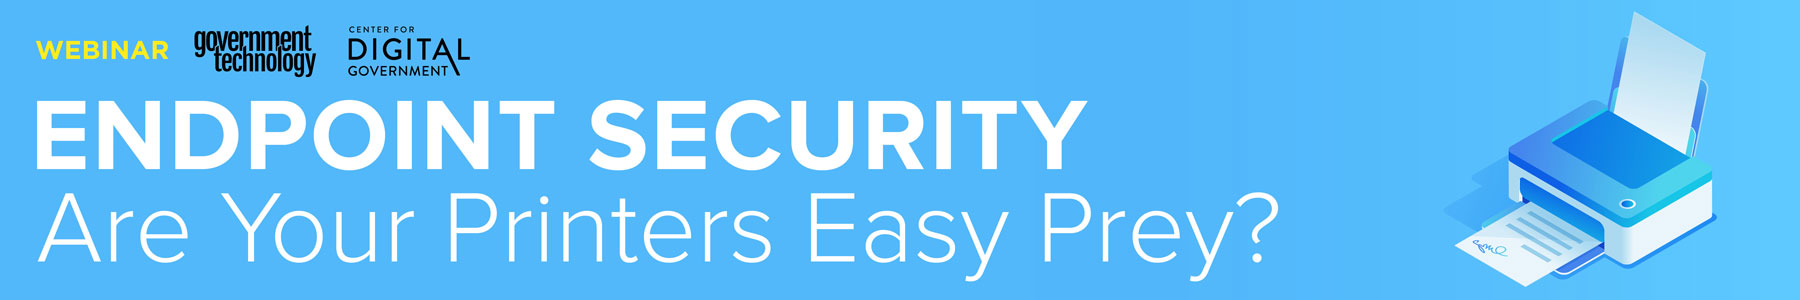 Endpoint Security: Are Your Printers Easy Prey?